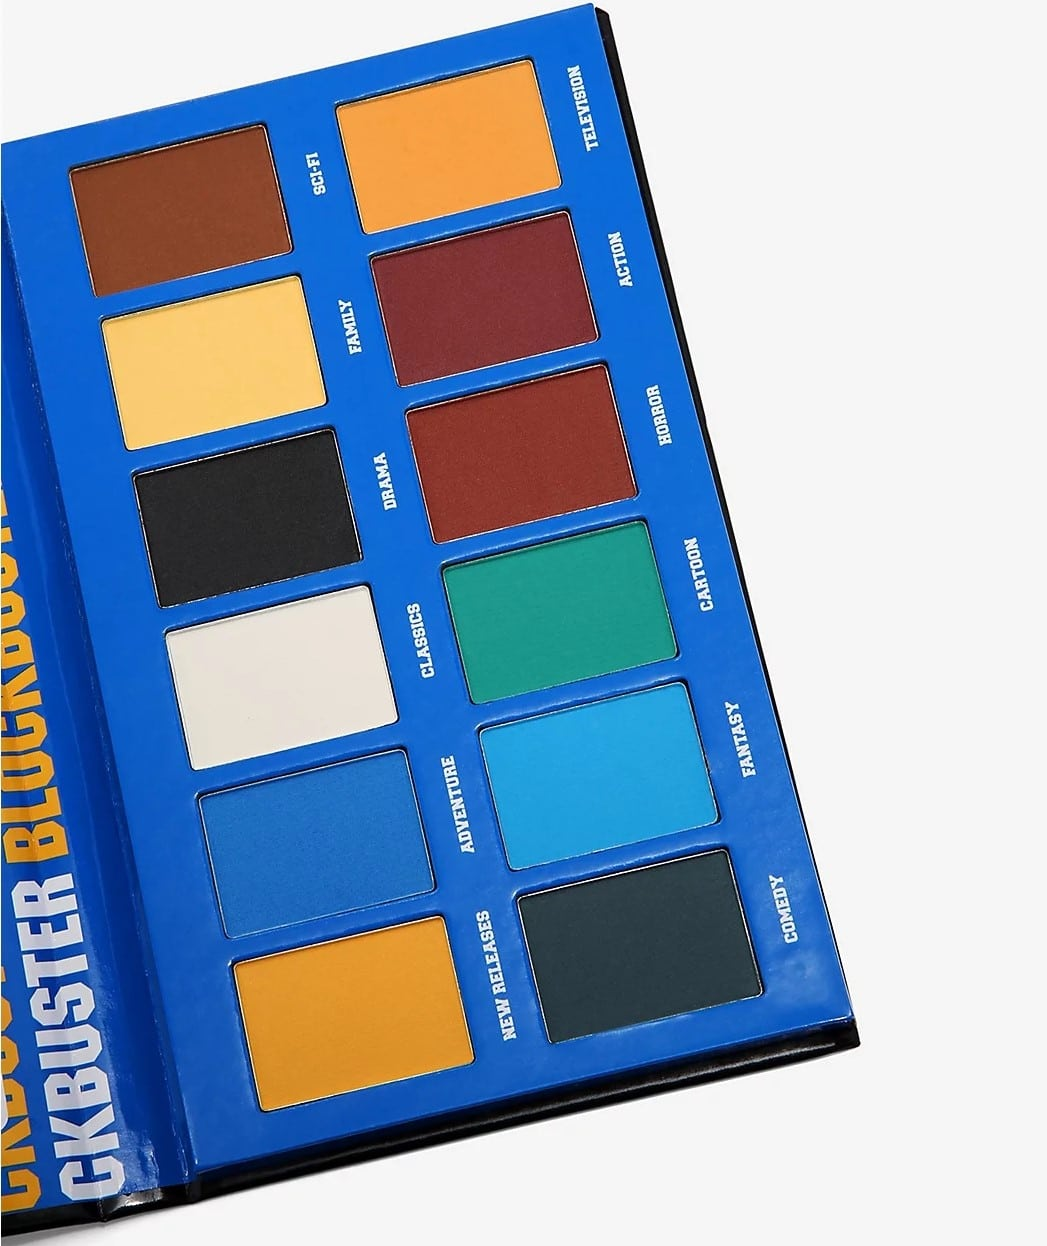 Blockbuster Eyeshadow Palette has 12 shades inspired by movie genres 14